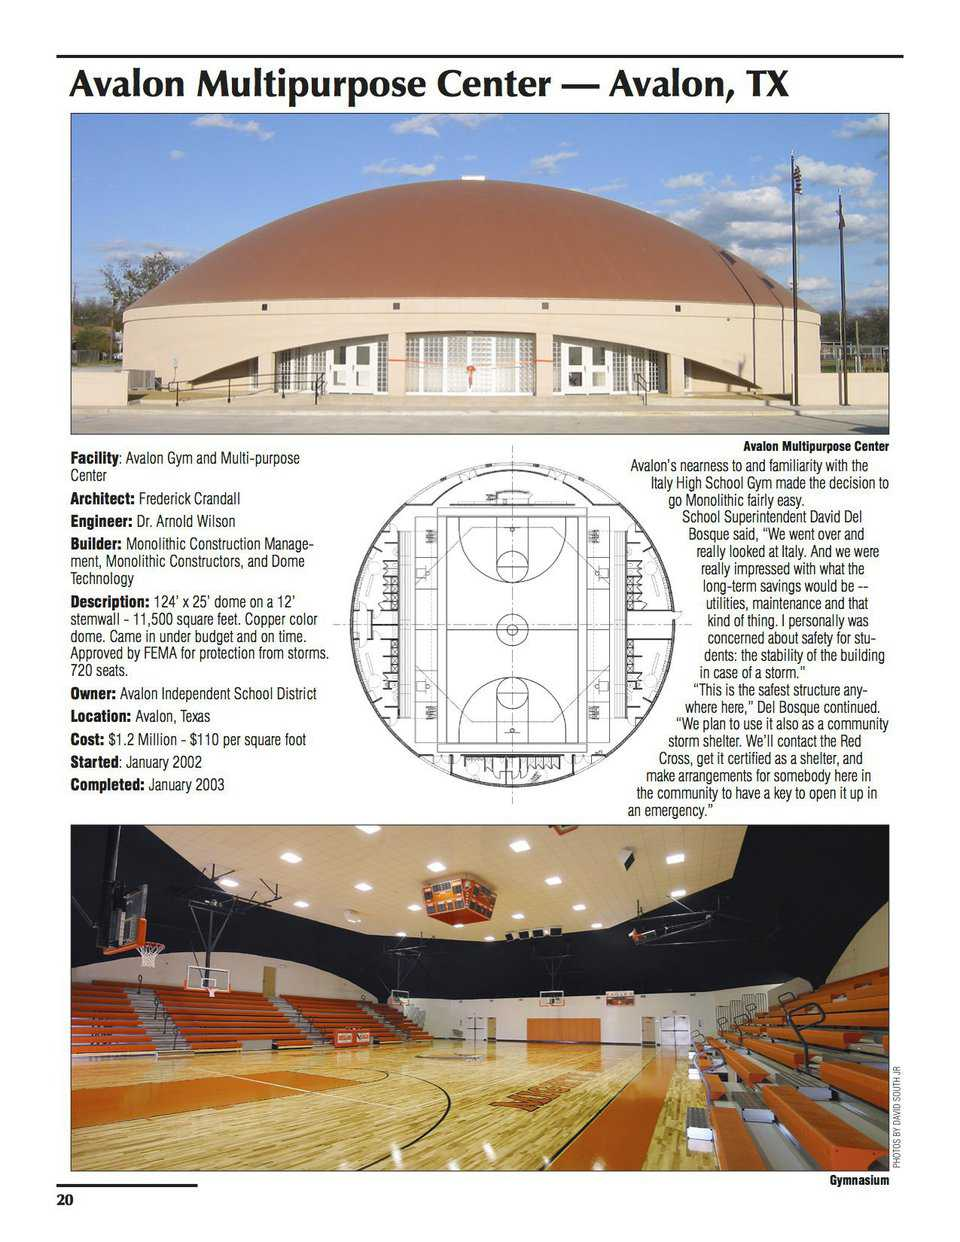 Sample pages – Avalon Multipurpose Center, Avalon, Texas